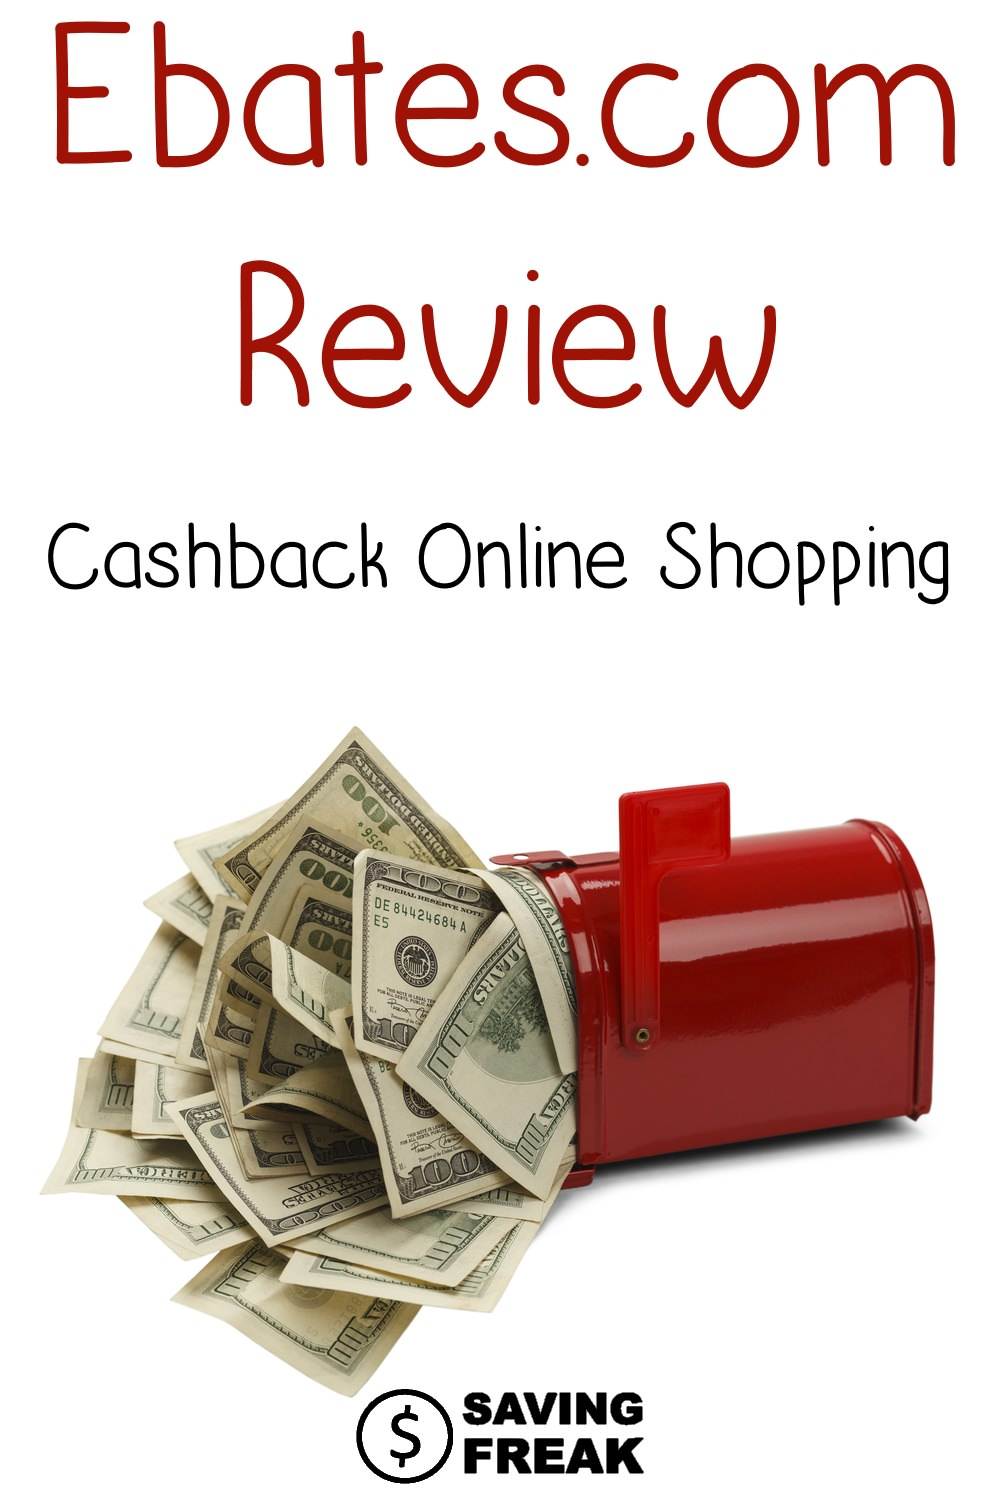 ebates review cashback shopping online